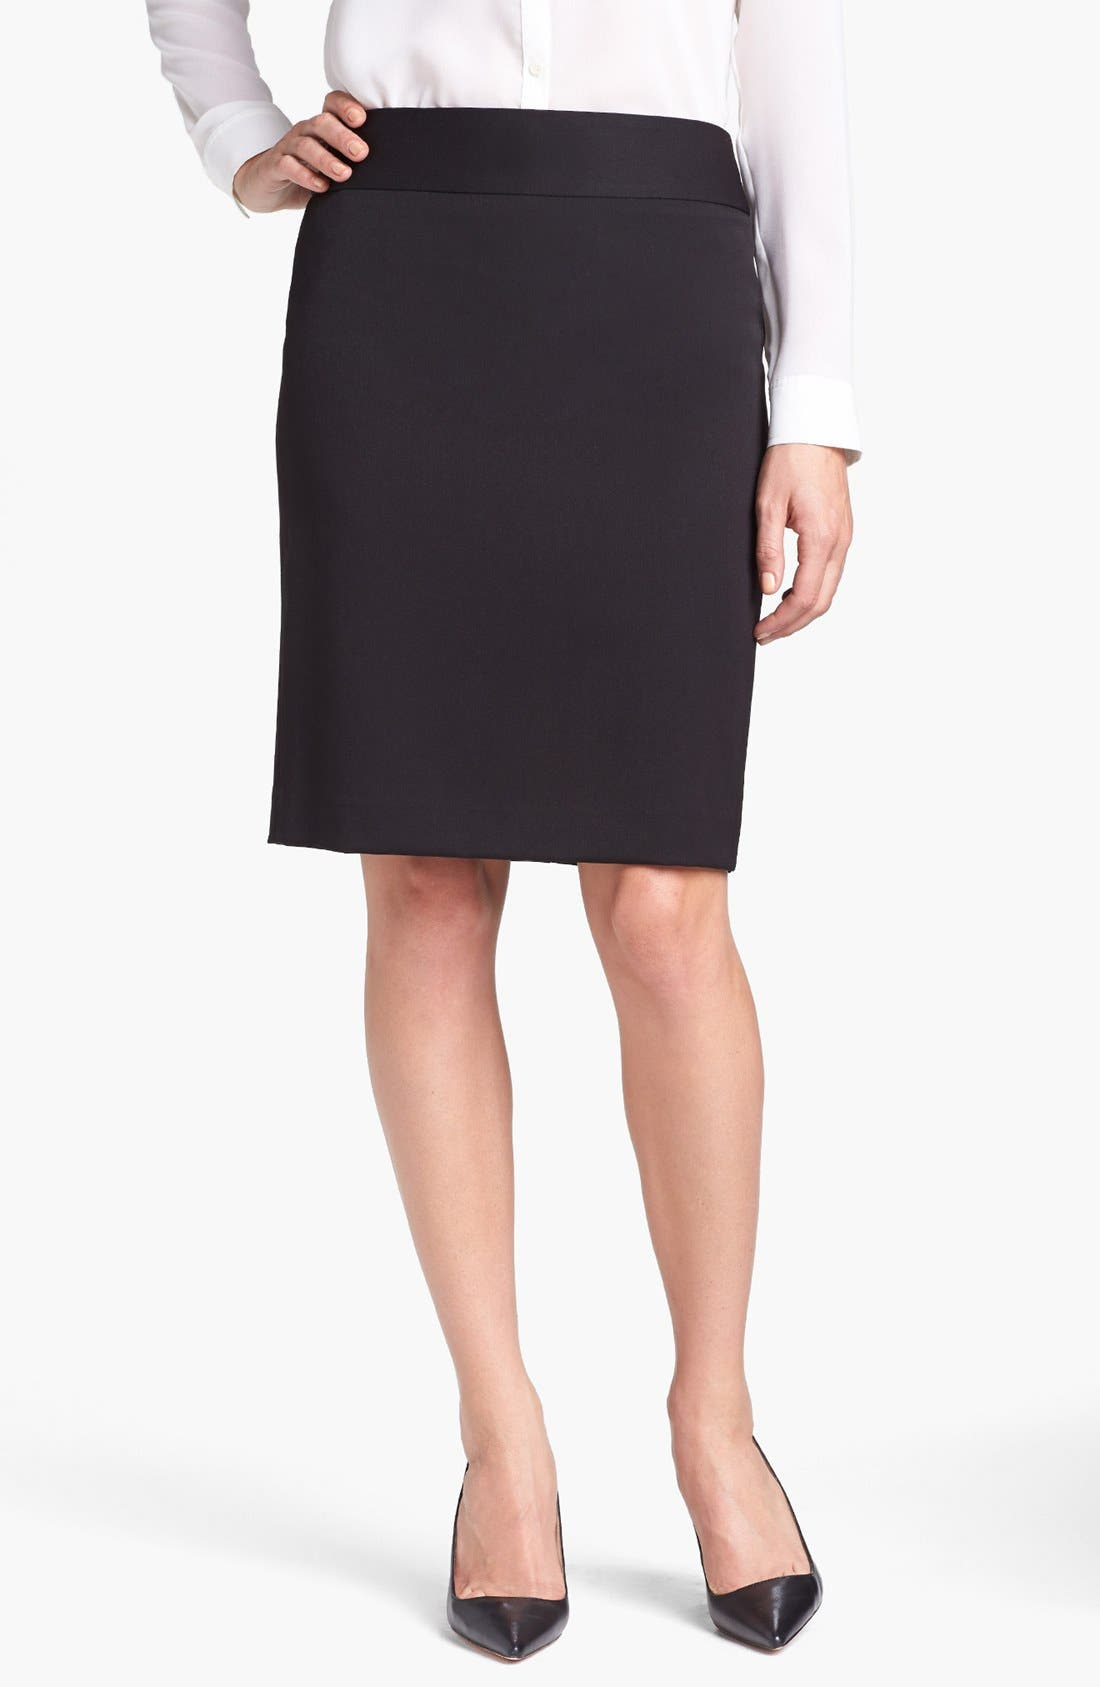 Alternate Image 1 Selected - Anne Klein Pencil Skirt (Petite)